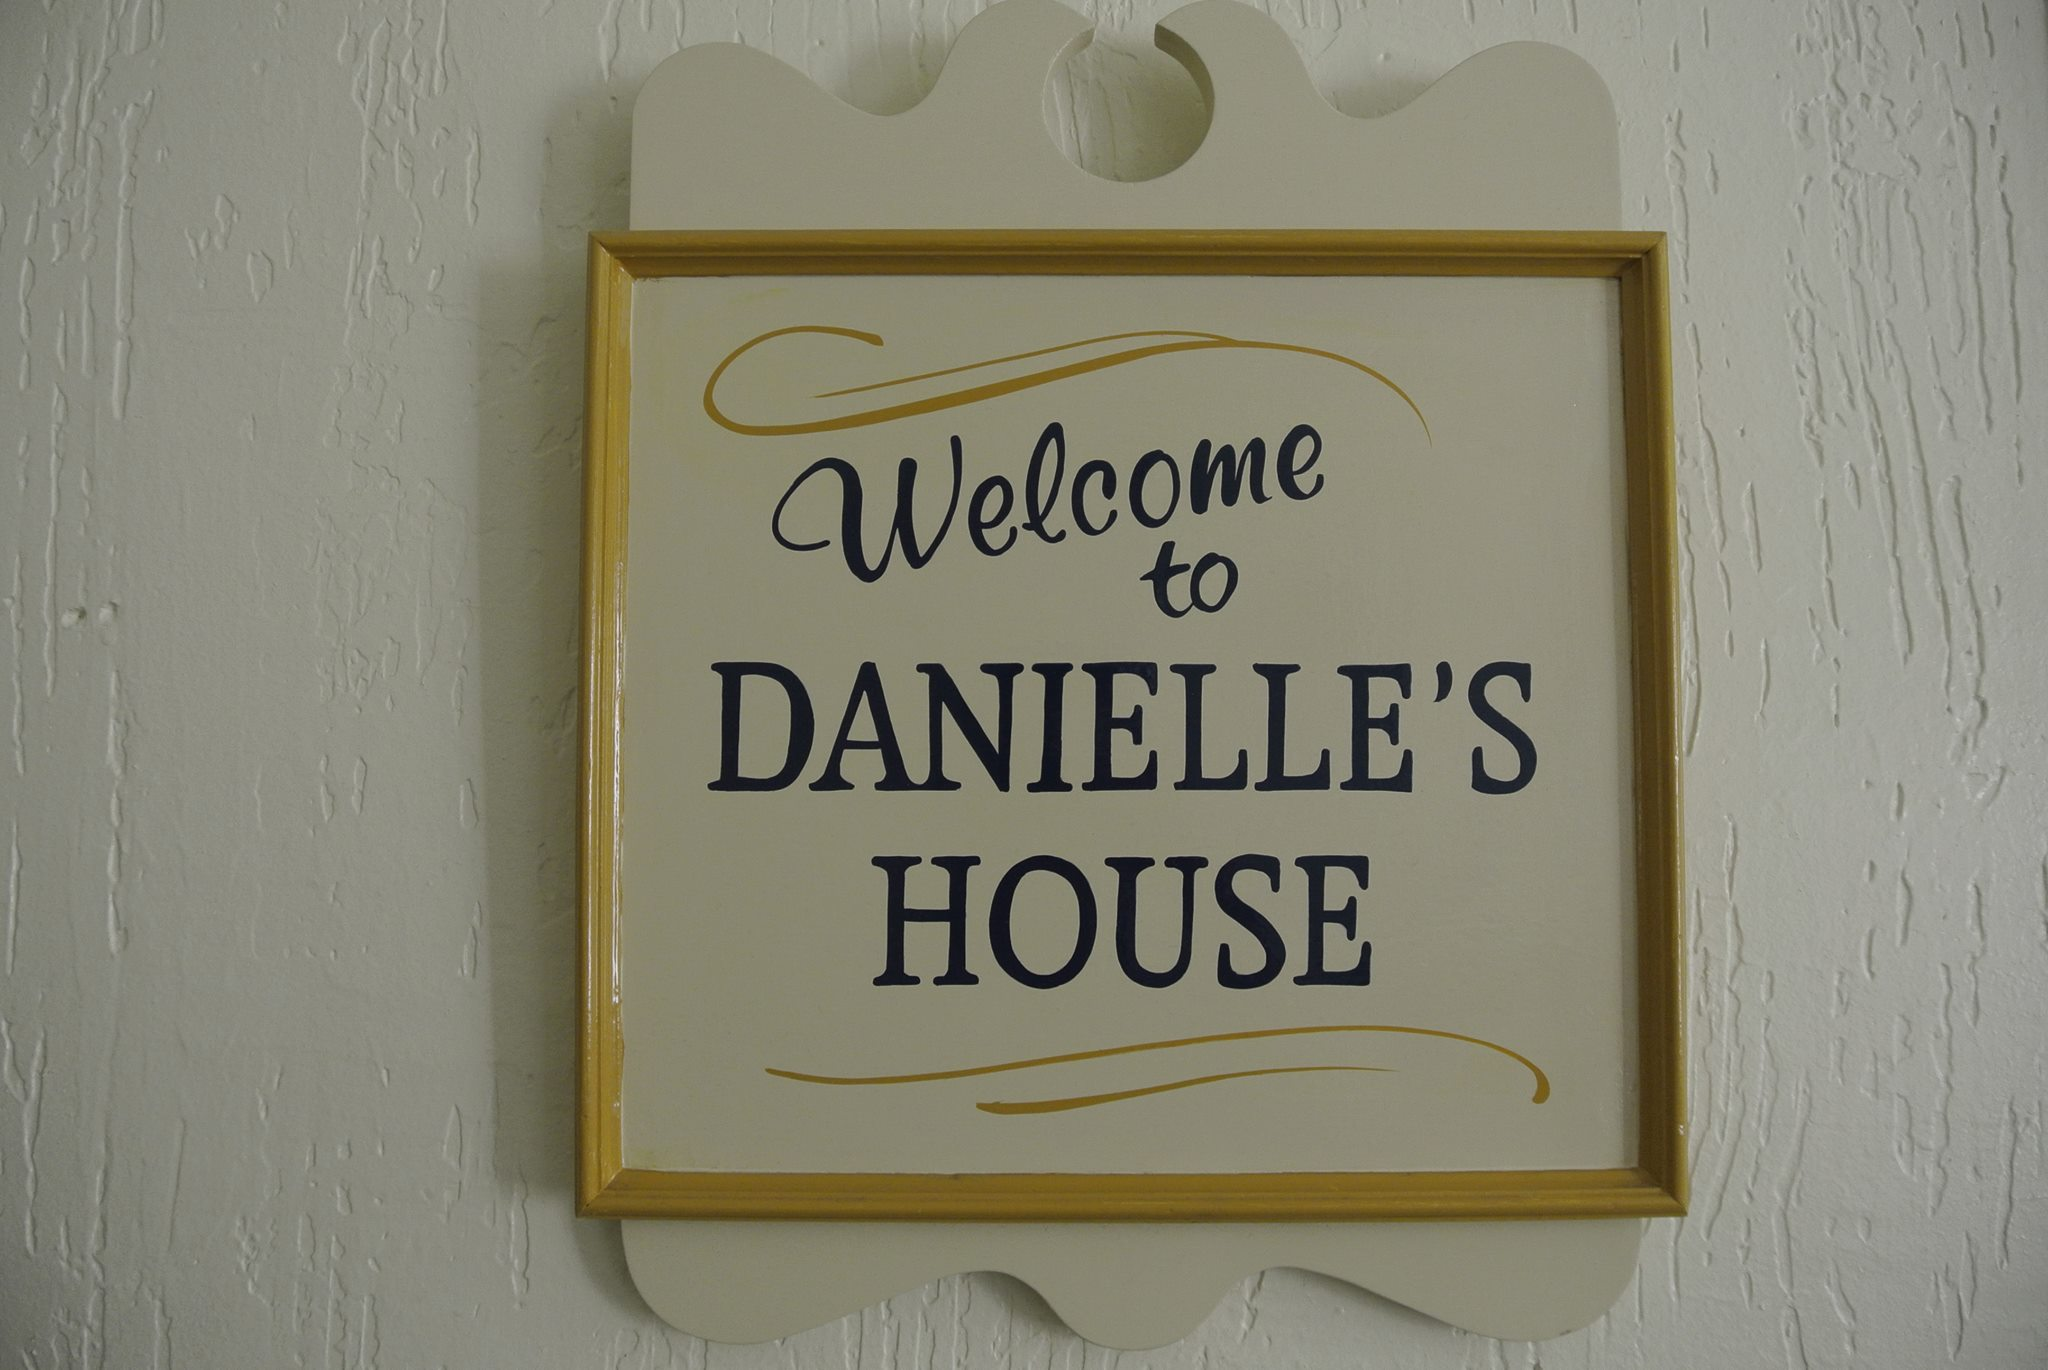 picture of Danielle's House